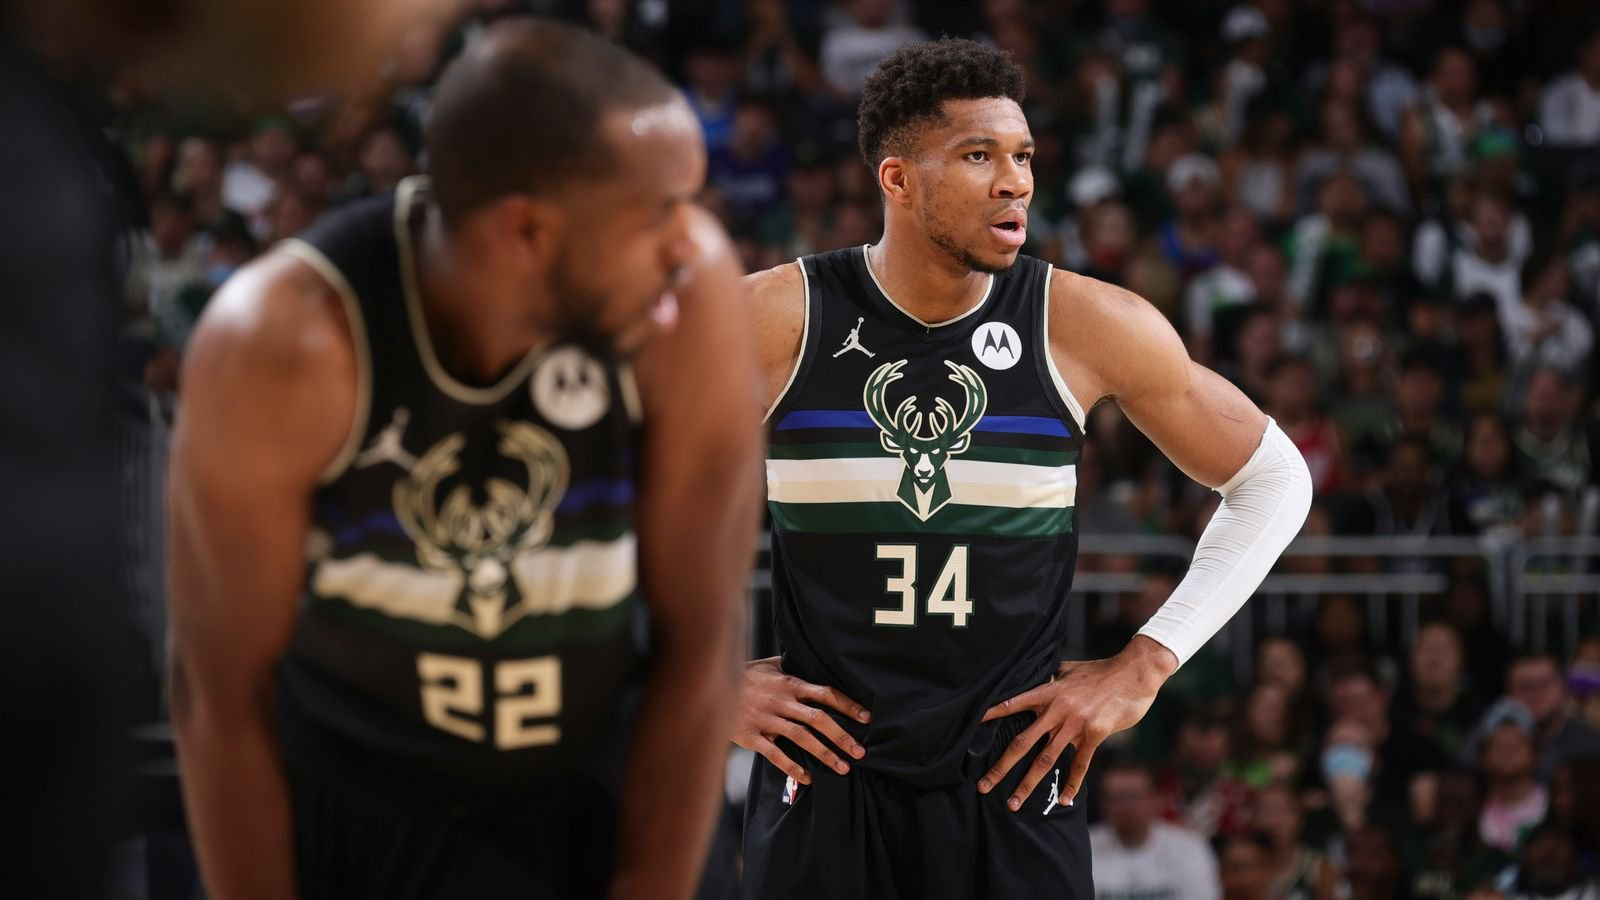 Bucks vs Nets Game 7 Betting Preview: The Market is Having a Hard Time Choosing a Favorite With Everything on the Line